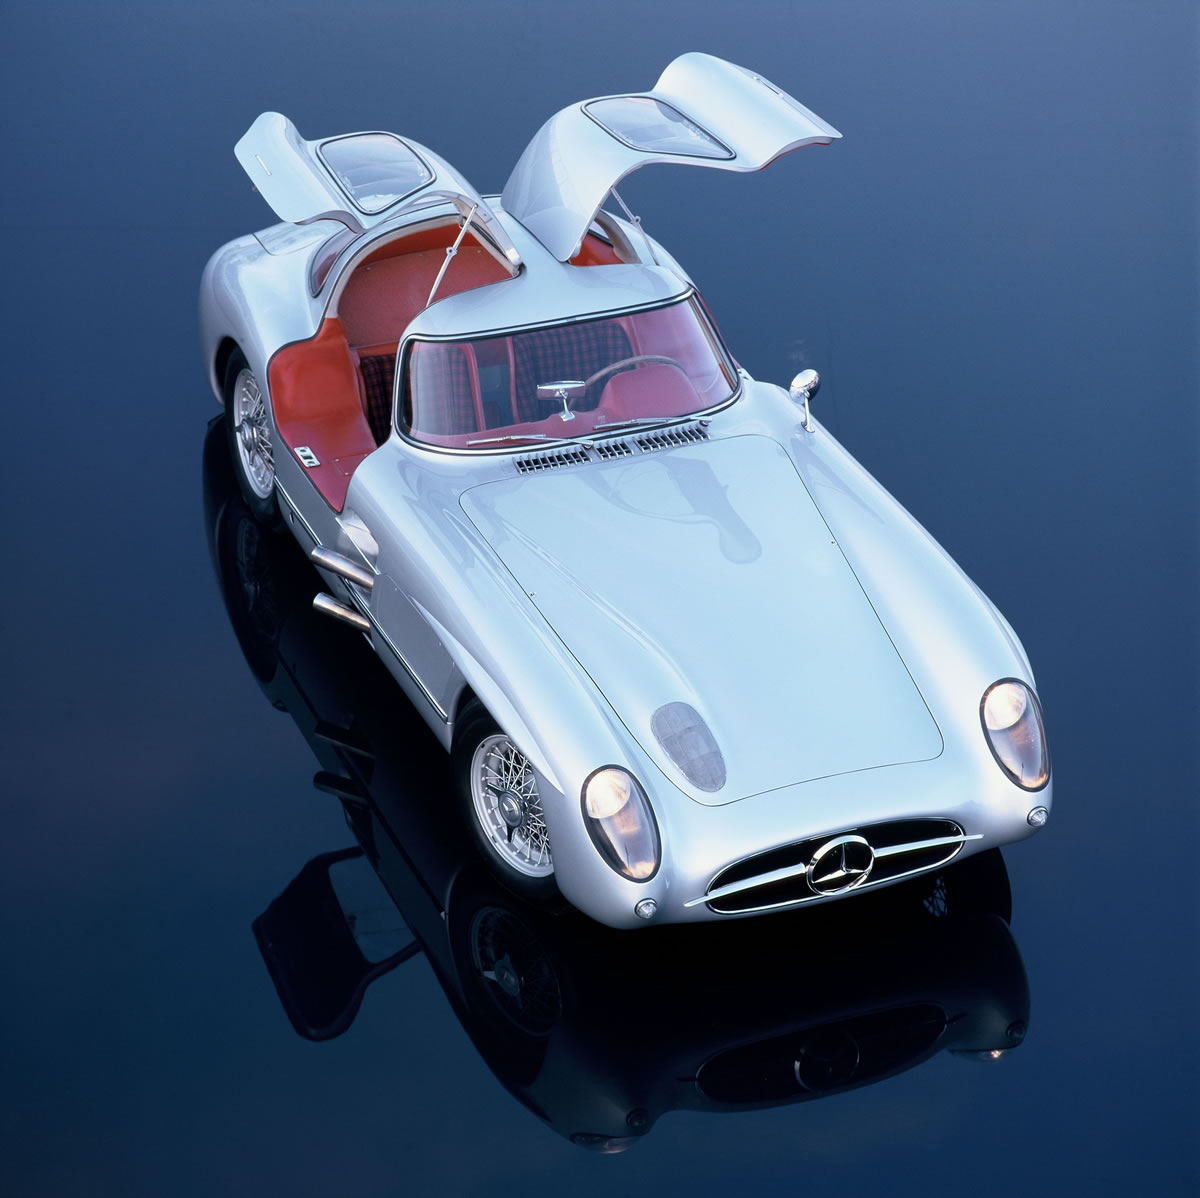 in 1955 Fangio won the world championship again ahead of Stirling Moss, also on a 300 SLR